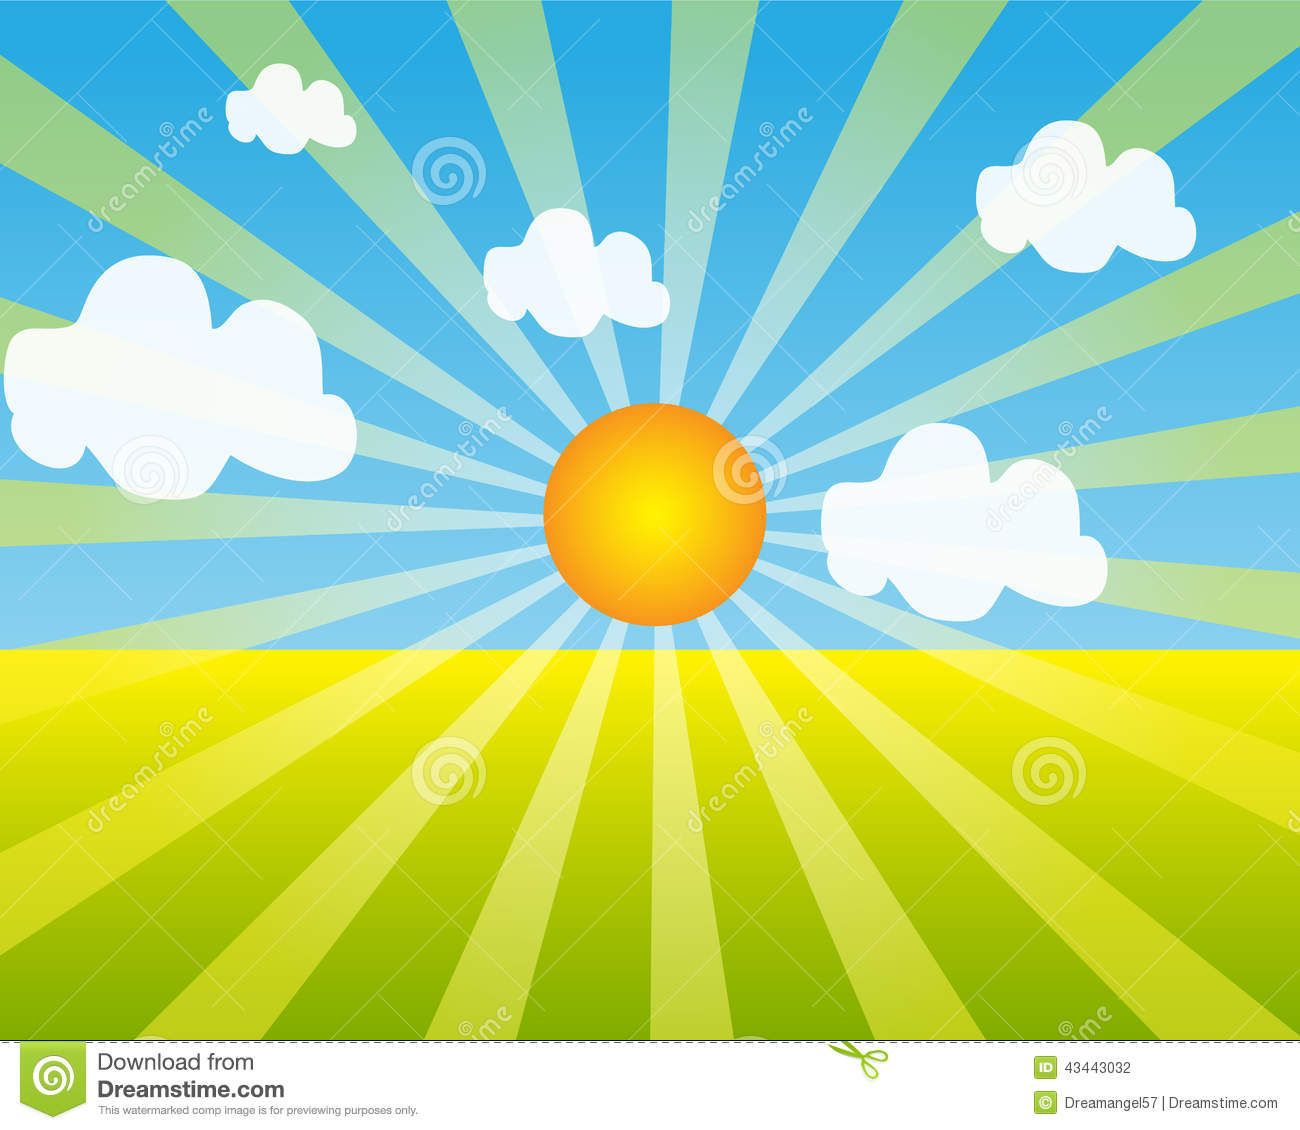 Sunrise background clipart 4 » Clipart Station.